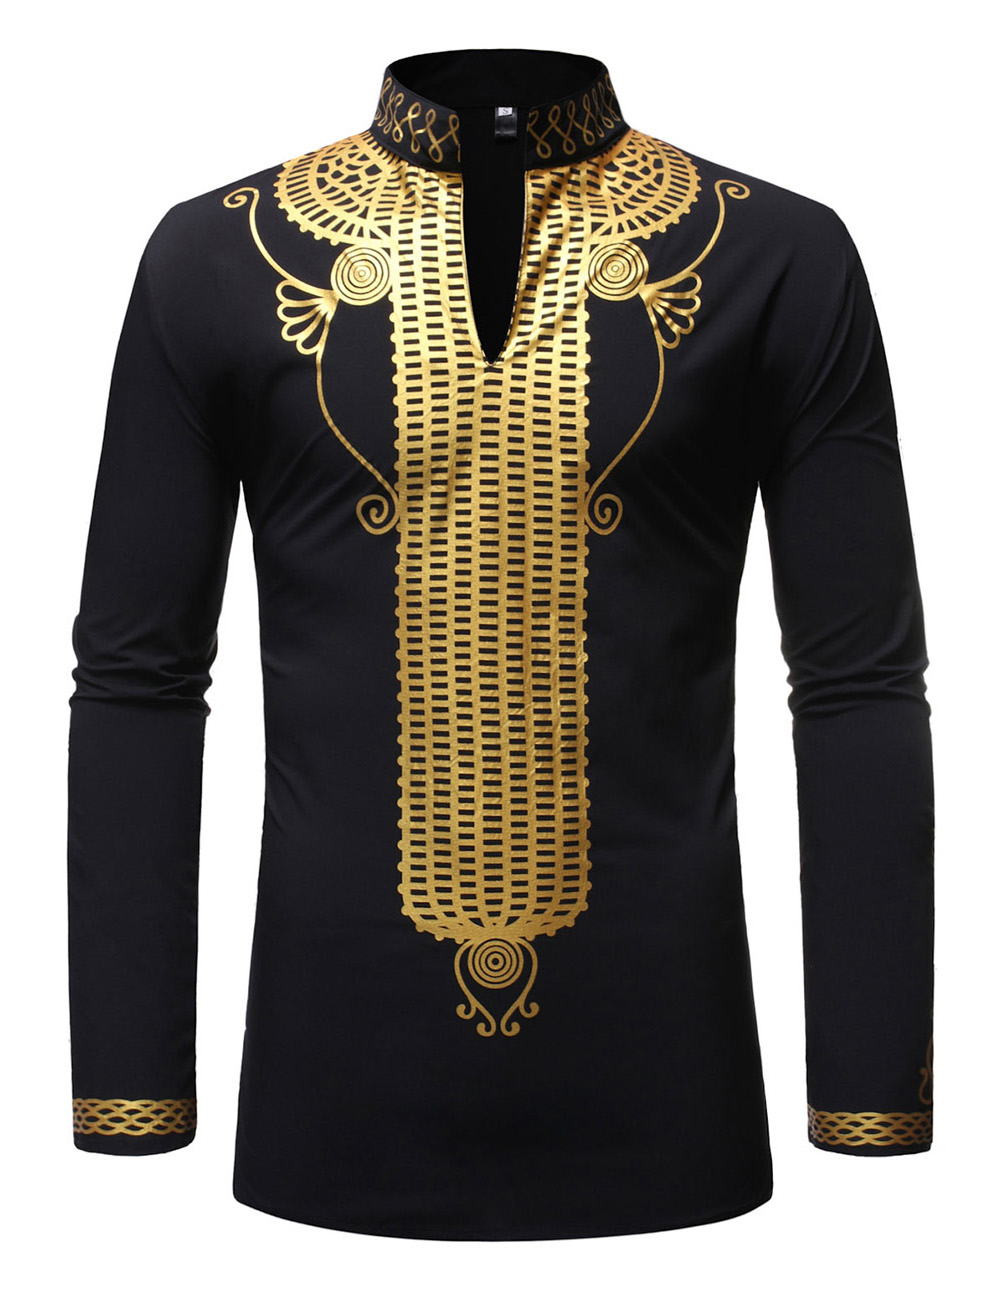 //cdn.affectcloud.com/hexinfashion/upload/imgs/African_Clothing/African_Men_T-shirt/VZ190036-BK1/VZ190036-BK1-201911065dc2a46e68de1.jpg